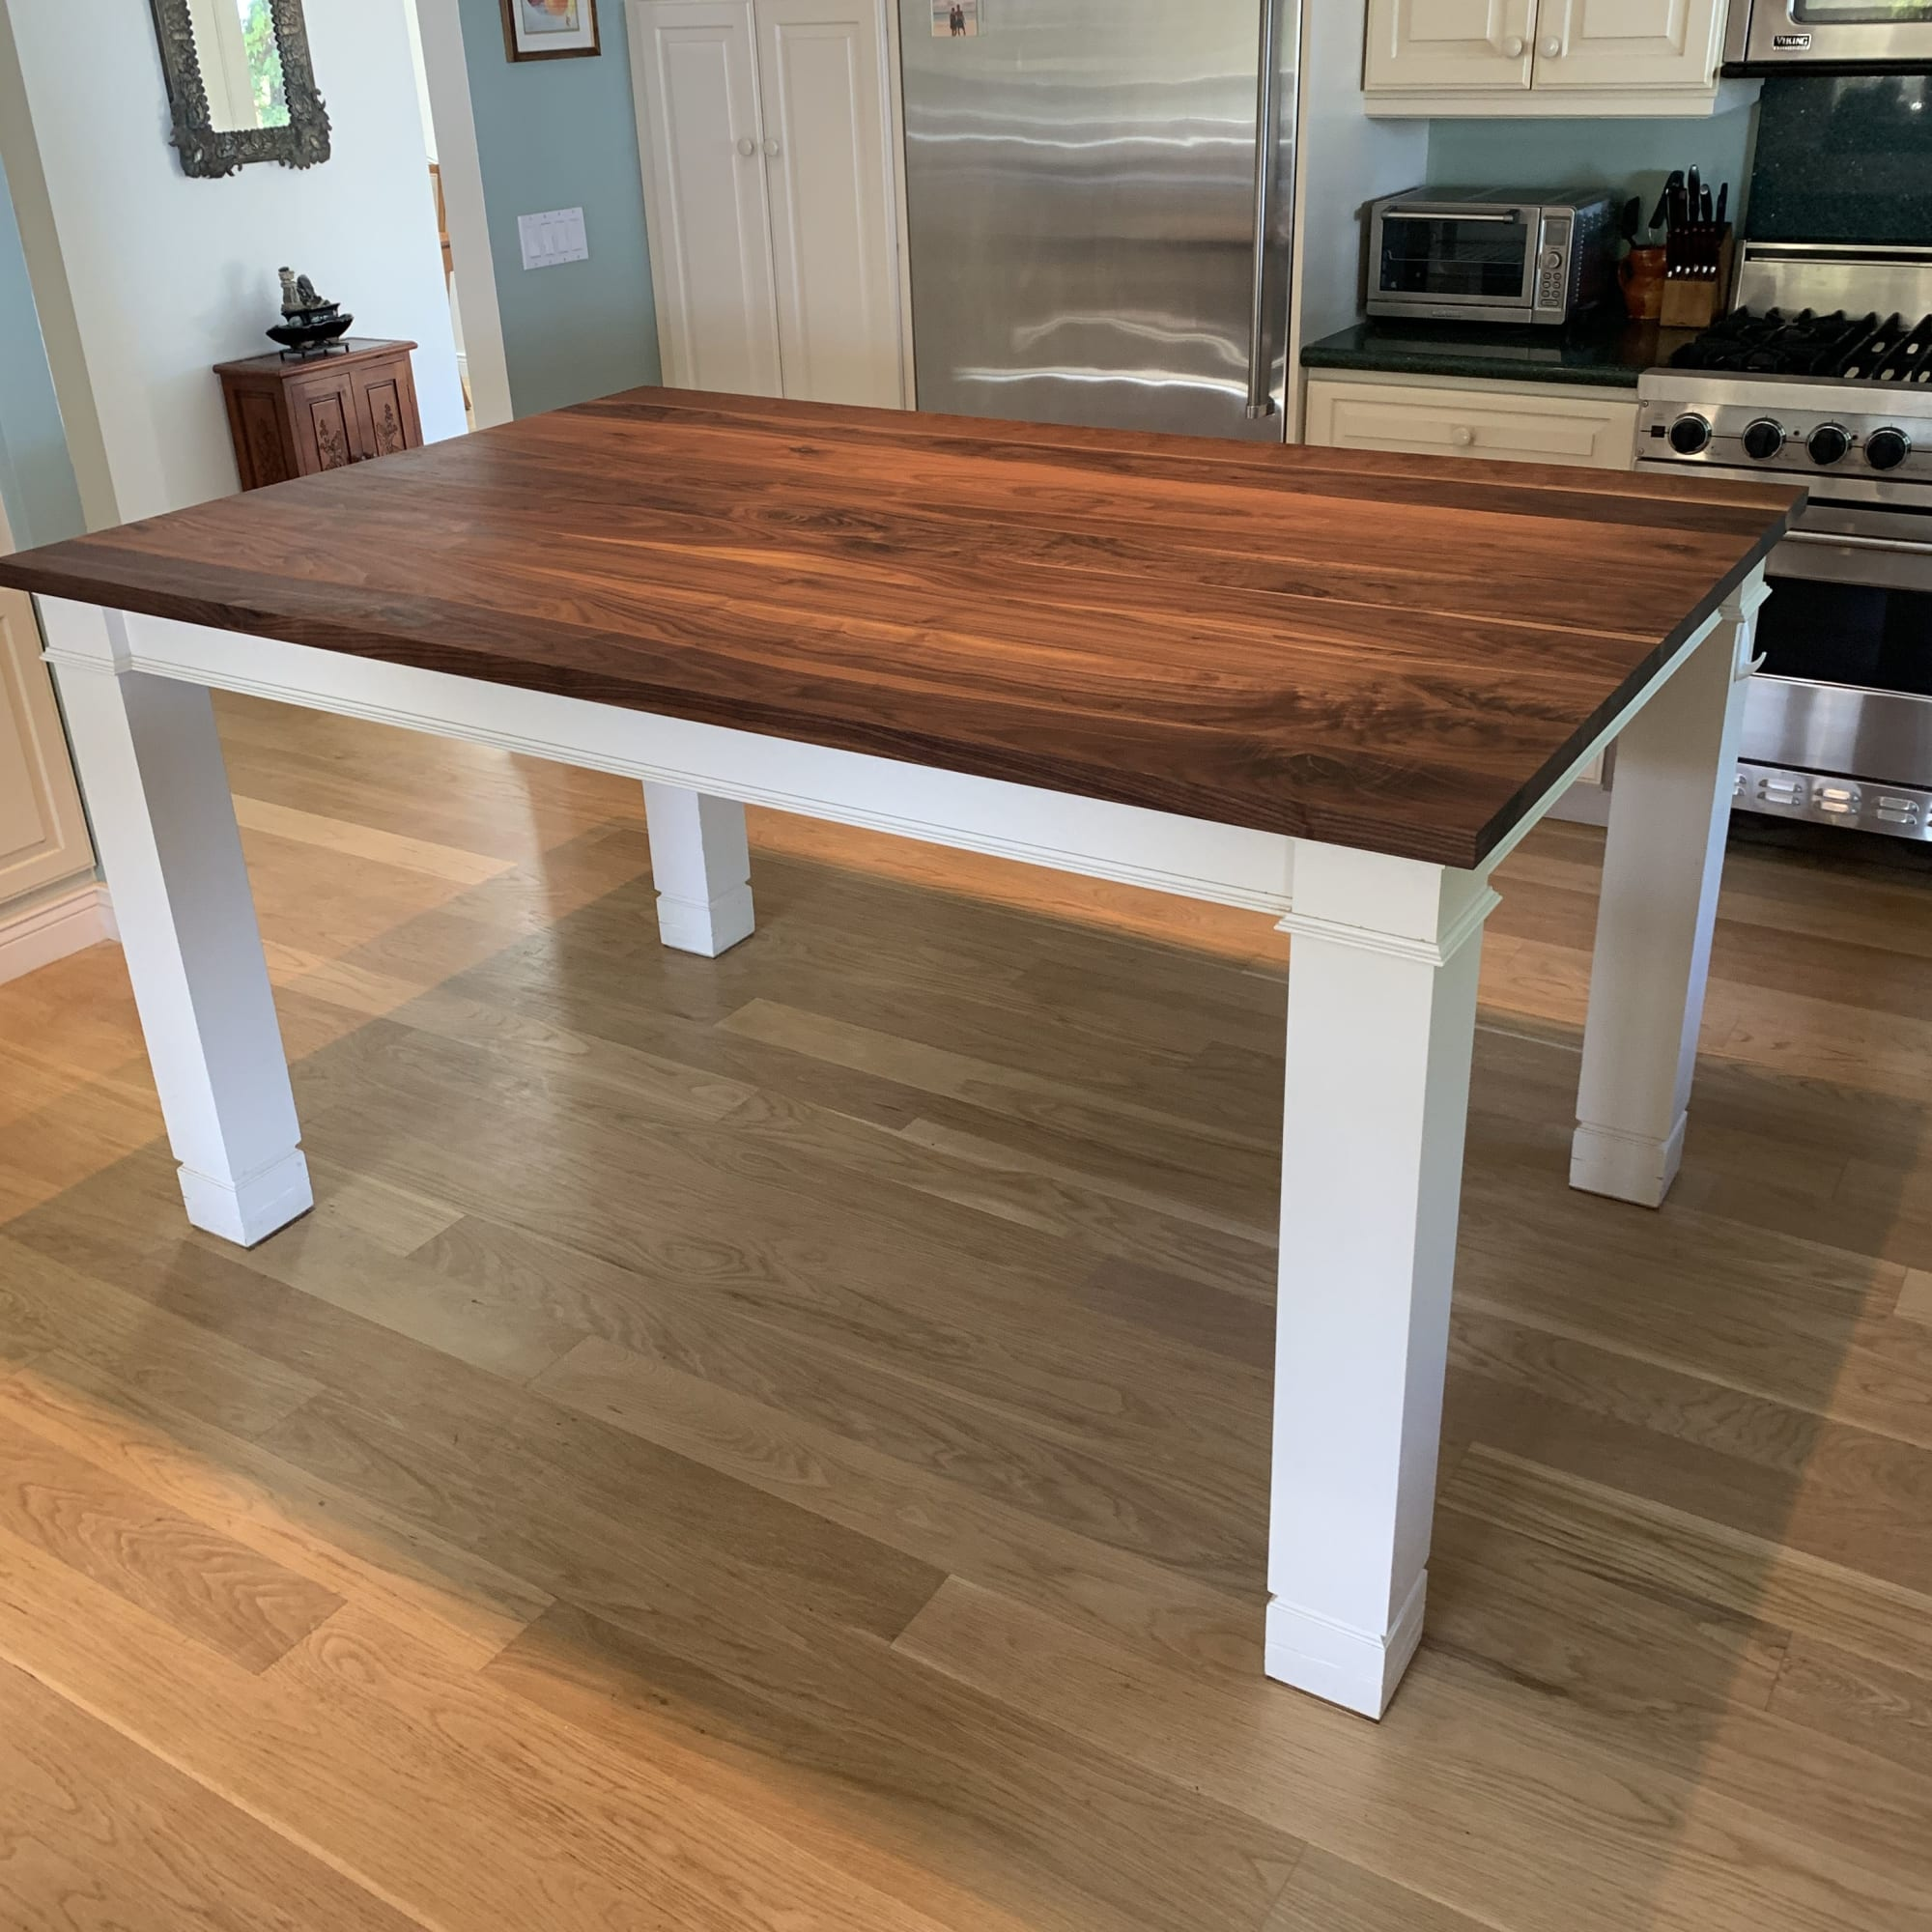 White and walnut kitchen table